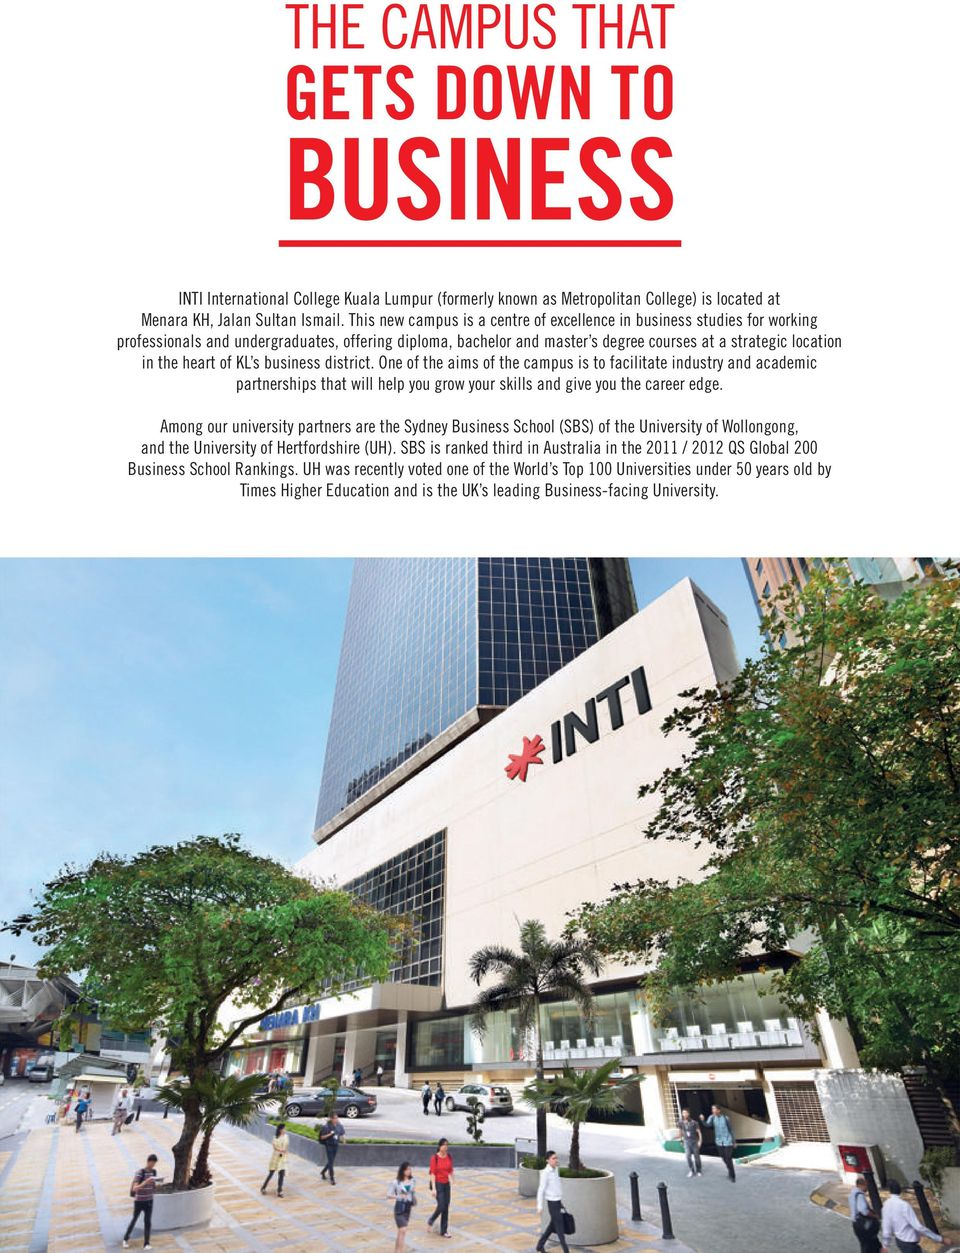 of KL s business district. One of the aims of the campus is to facilitate industry and academic partnerships that will help you grow your skills and give you the career edge.